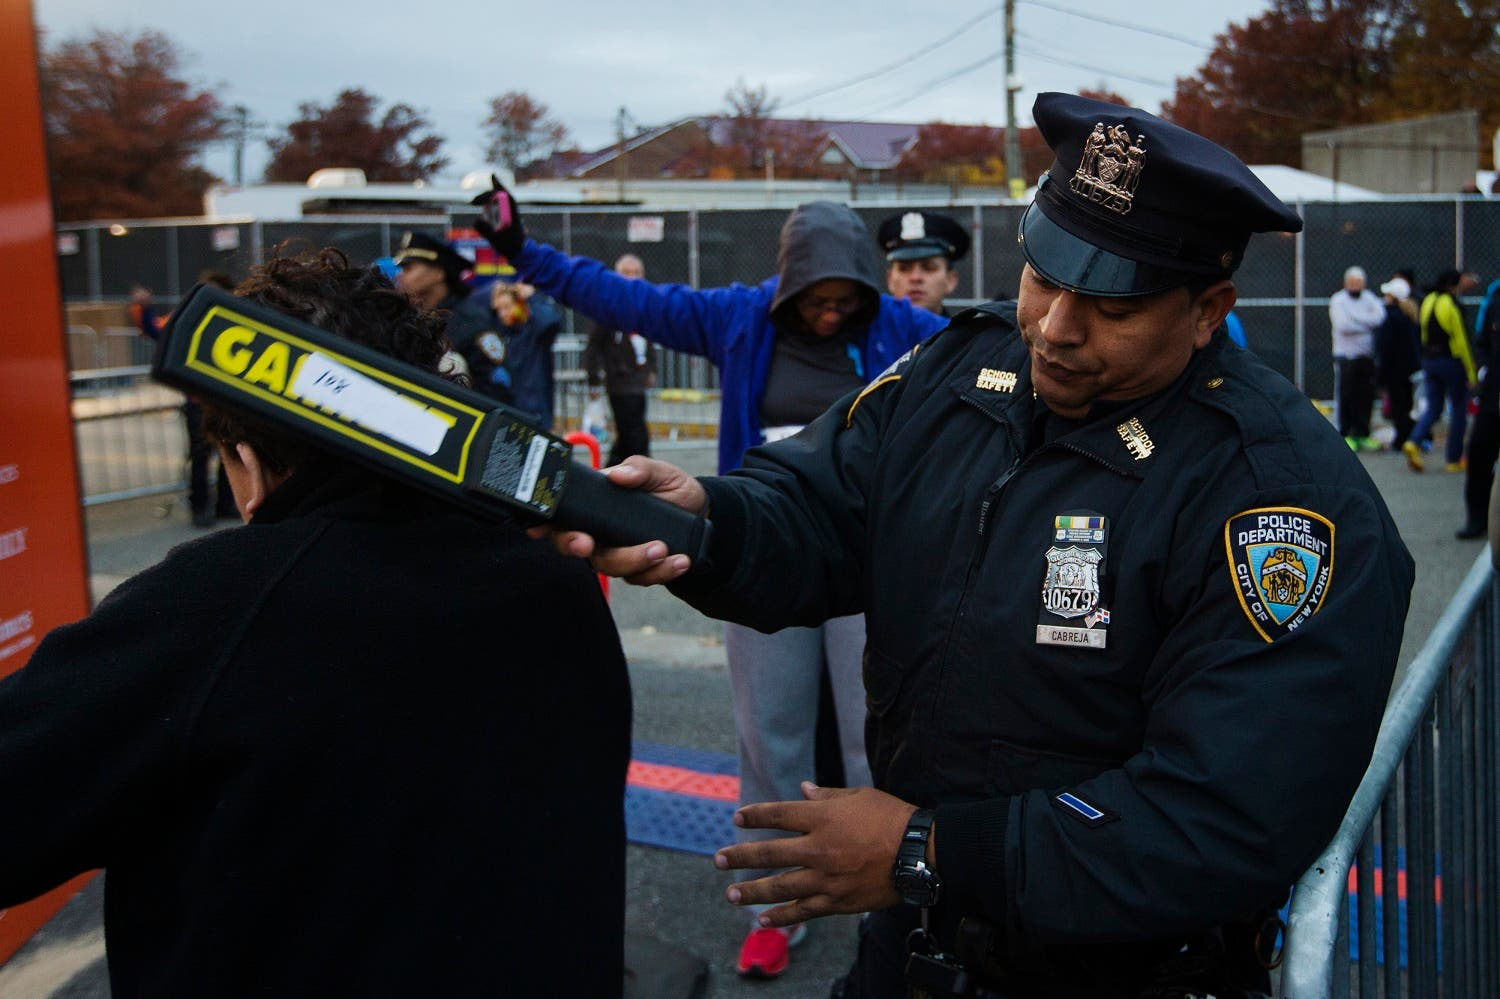 New York Police Department officers perform a security sweep on runners arriving to take part in the New York City Marathon. (Reuters)